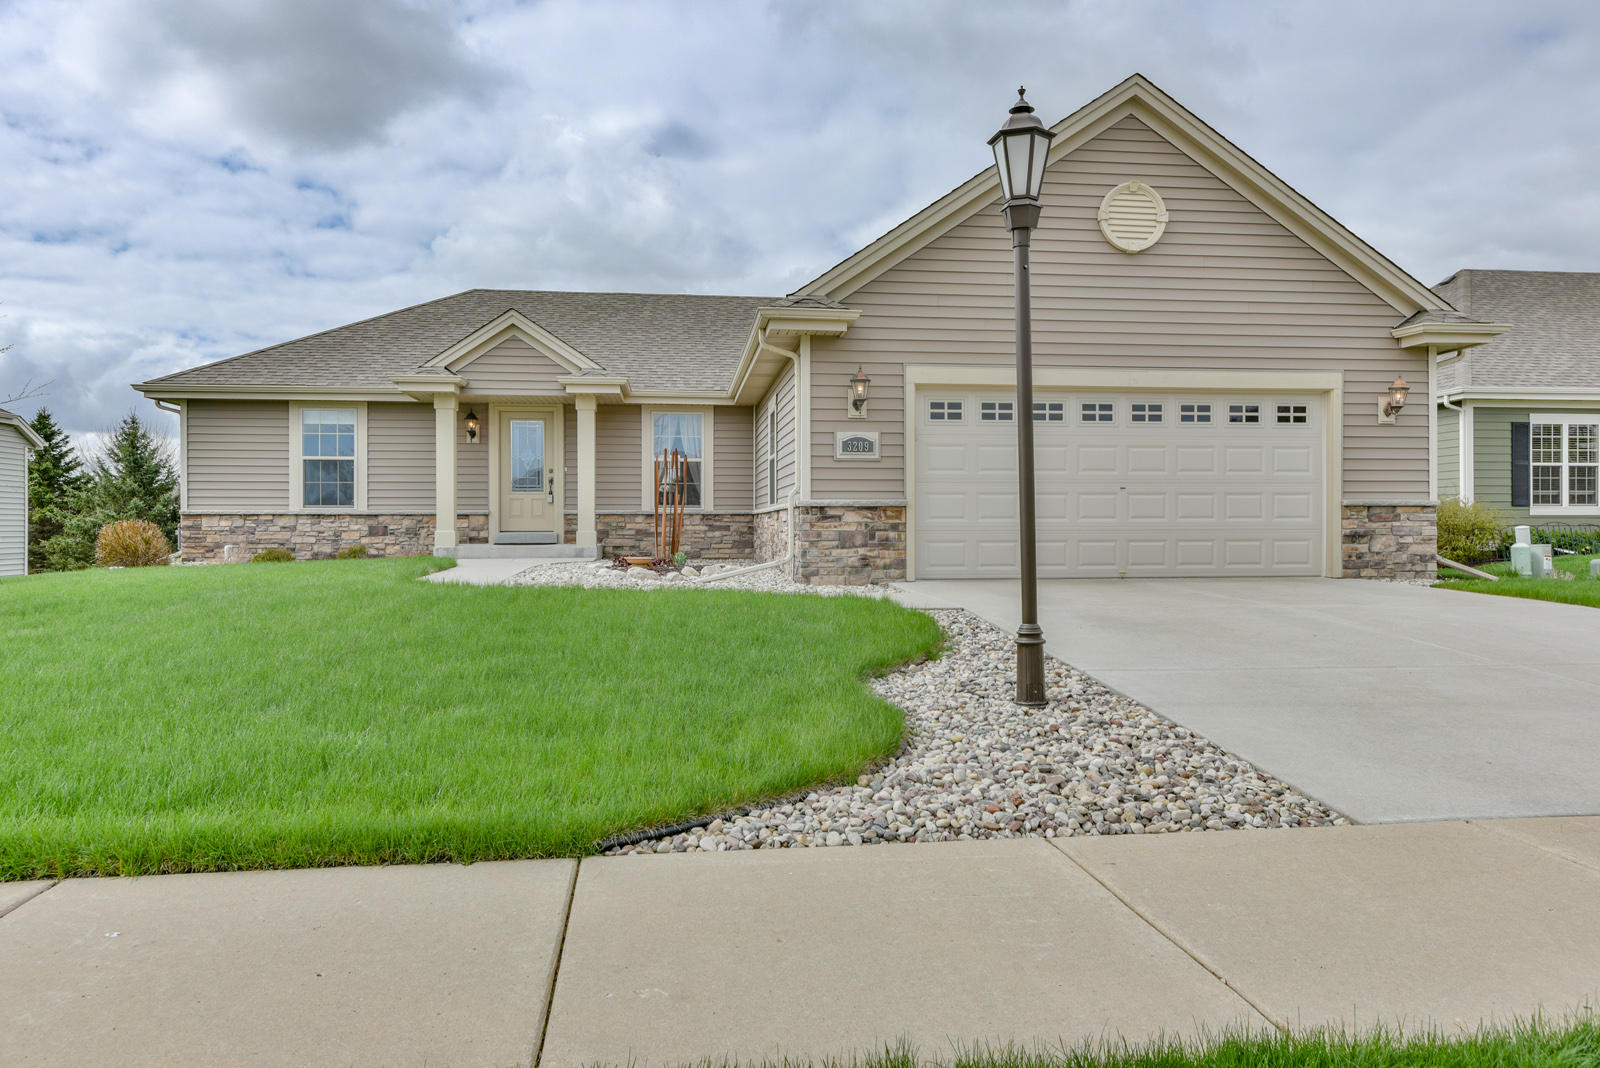 3209 Tanglewood Dr, Waukesha, Wisconsin 53189, 3 Bedrooms Bedrooms, 6 Rooms Rooms,2 BathroomsBathrooms,Single-Family,For Sale,Tanglewood Dr,1635126